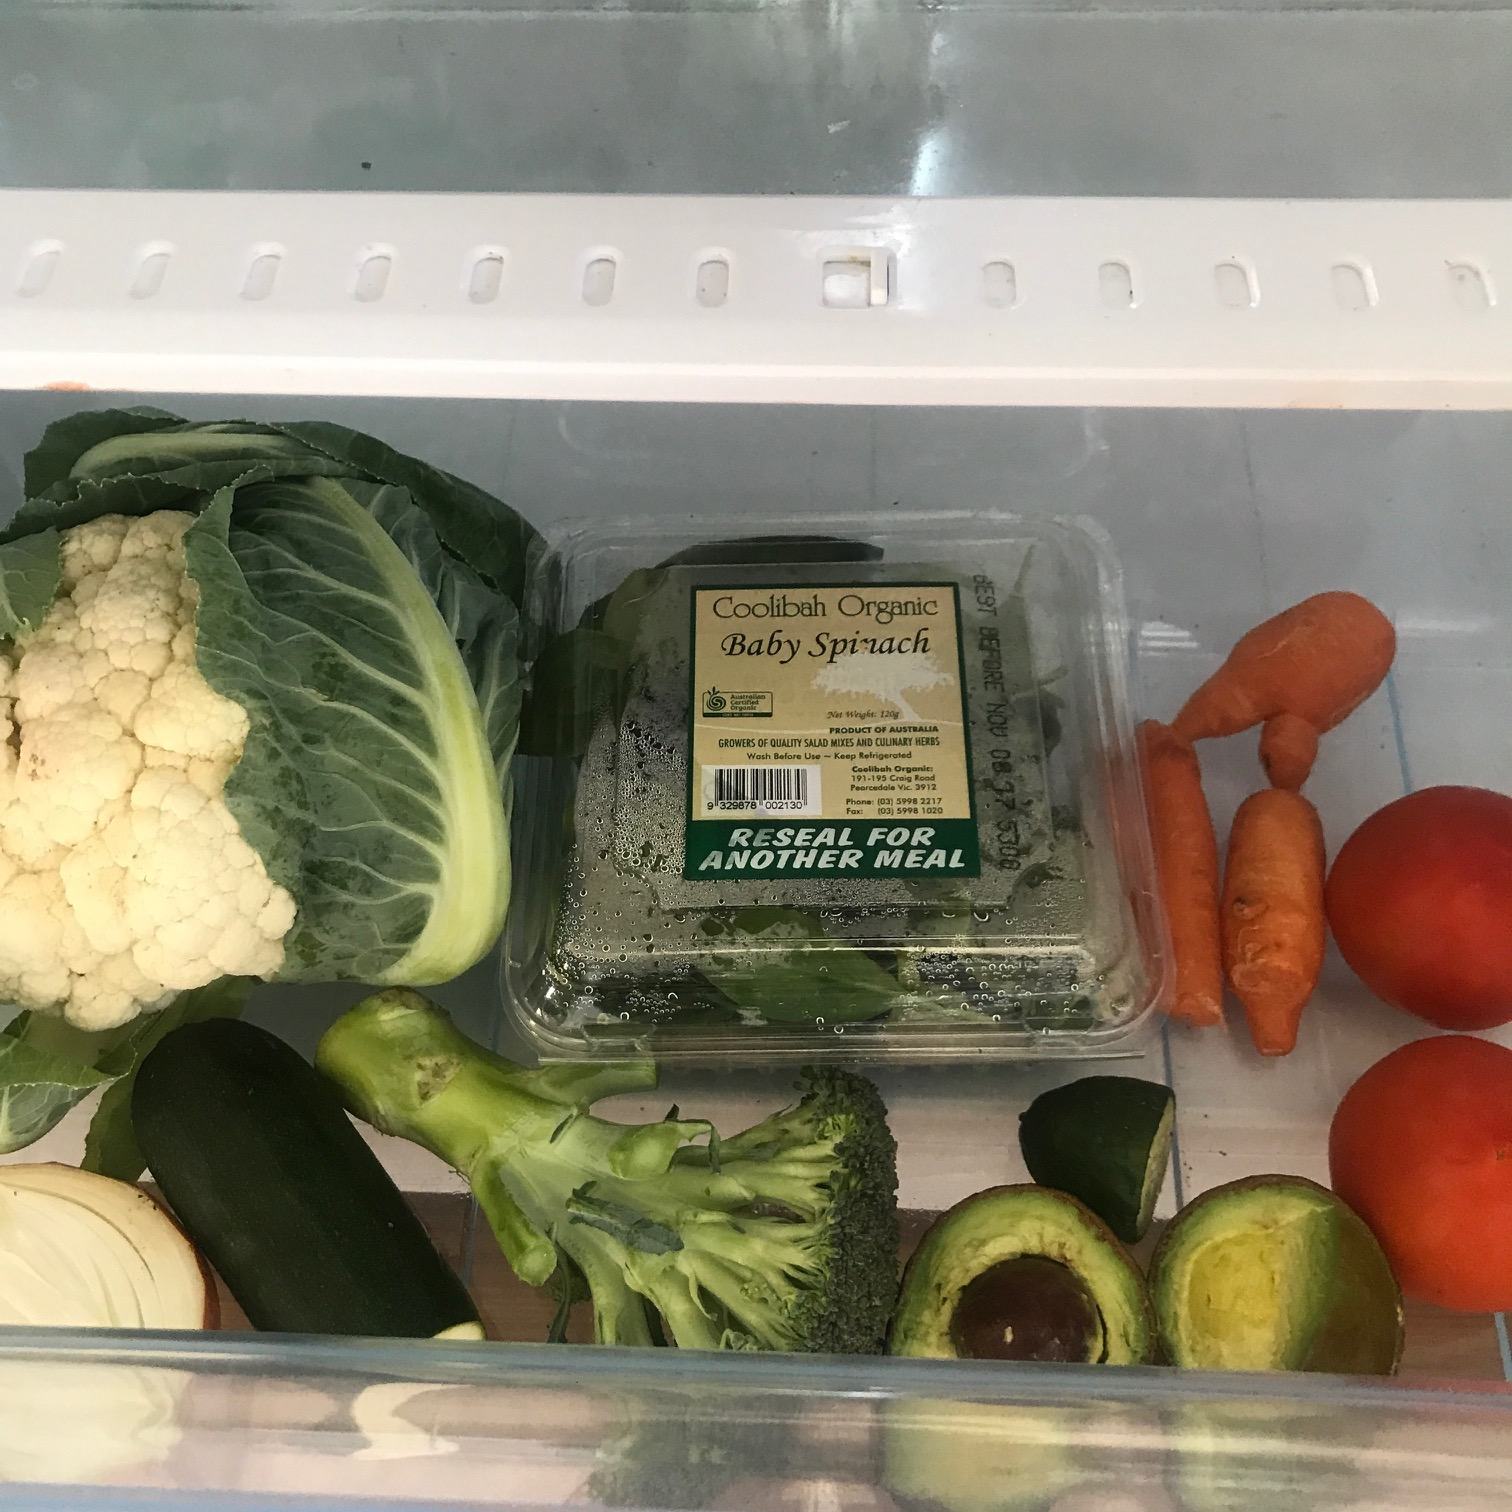 crisper, fridge, vegetables, organic, cauliflower, spinach, avocado, tomato, onion, carrot,